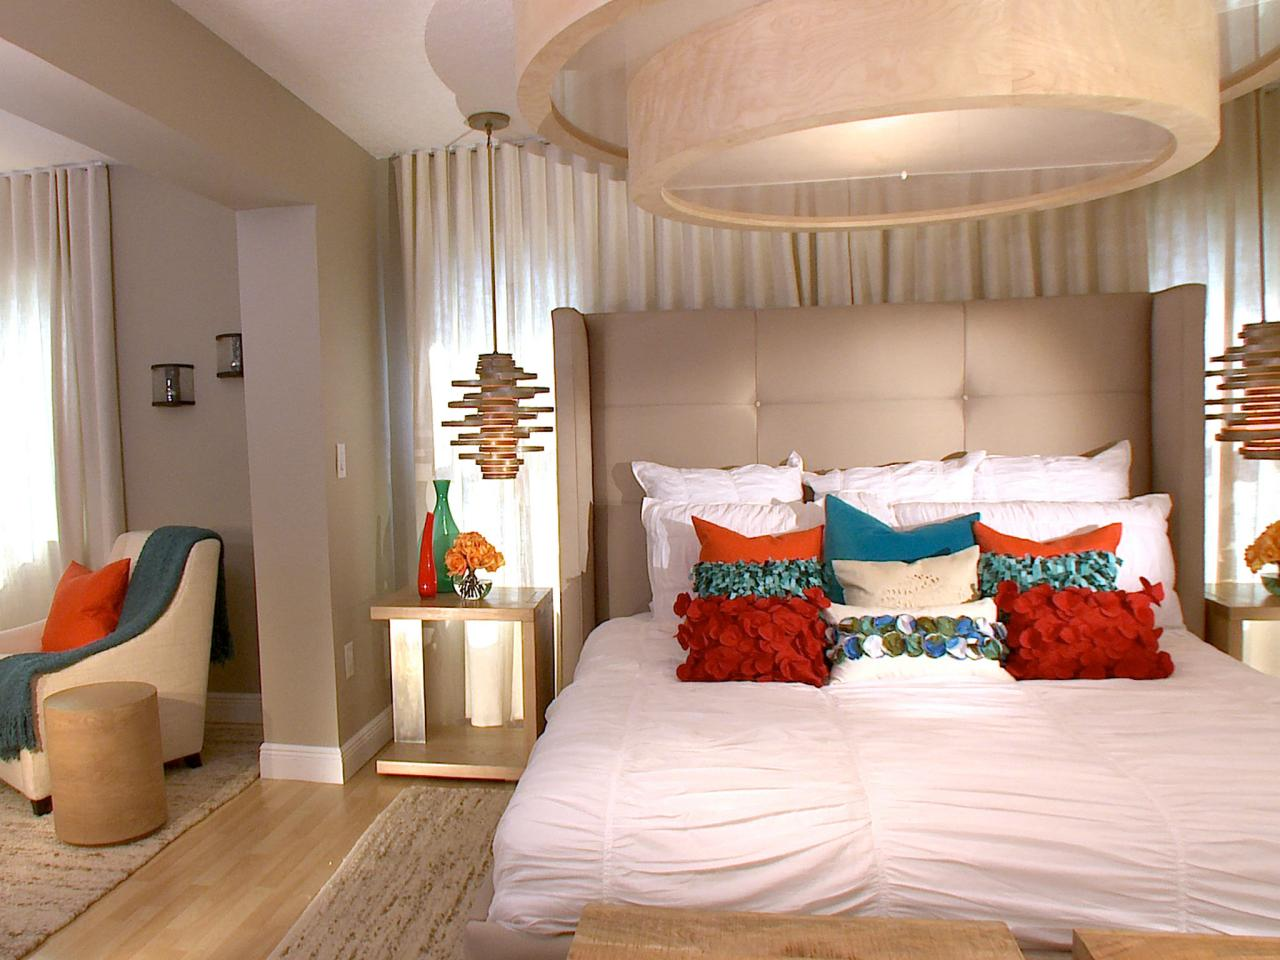 Home Design Tips bedroom ceiling design ideas: pictures, options & tips | hgtv